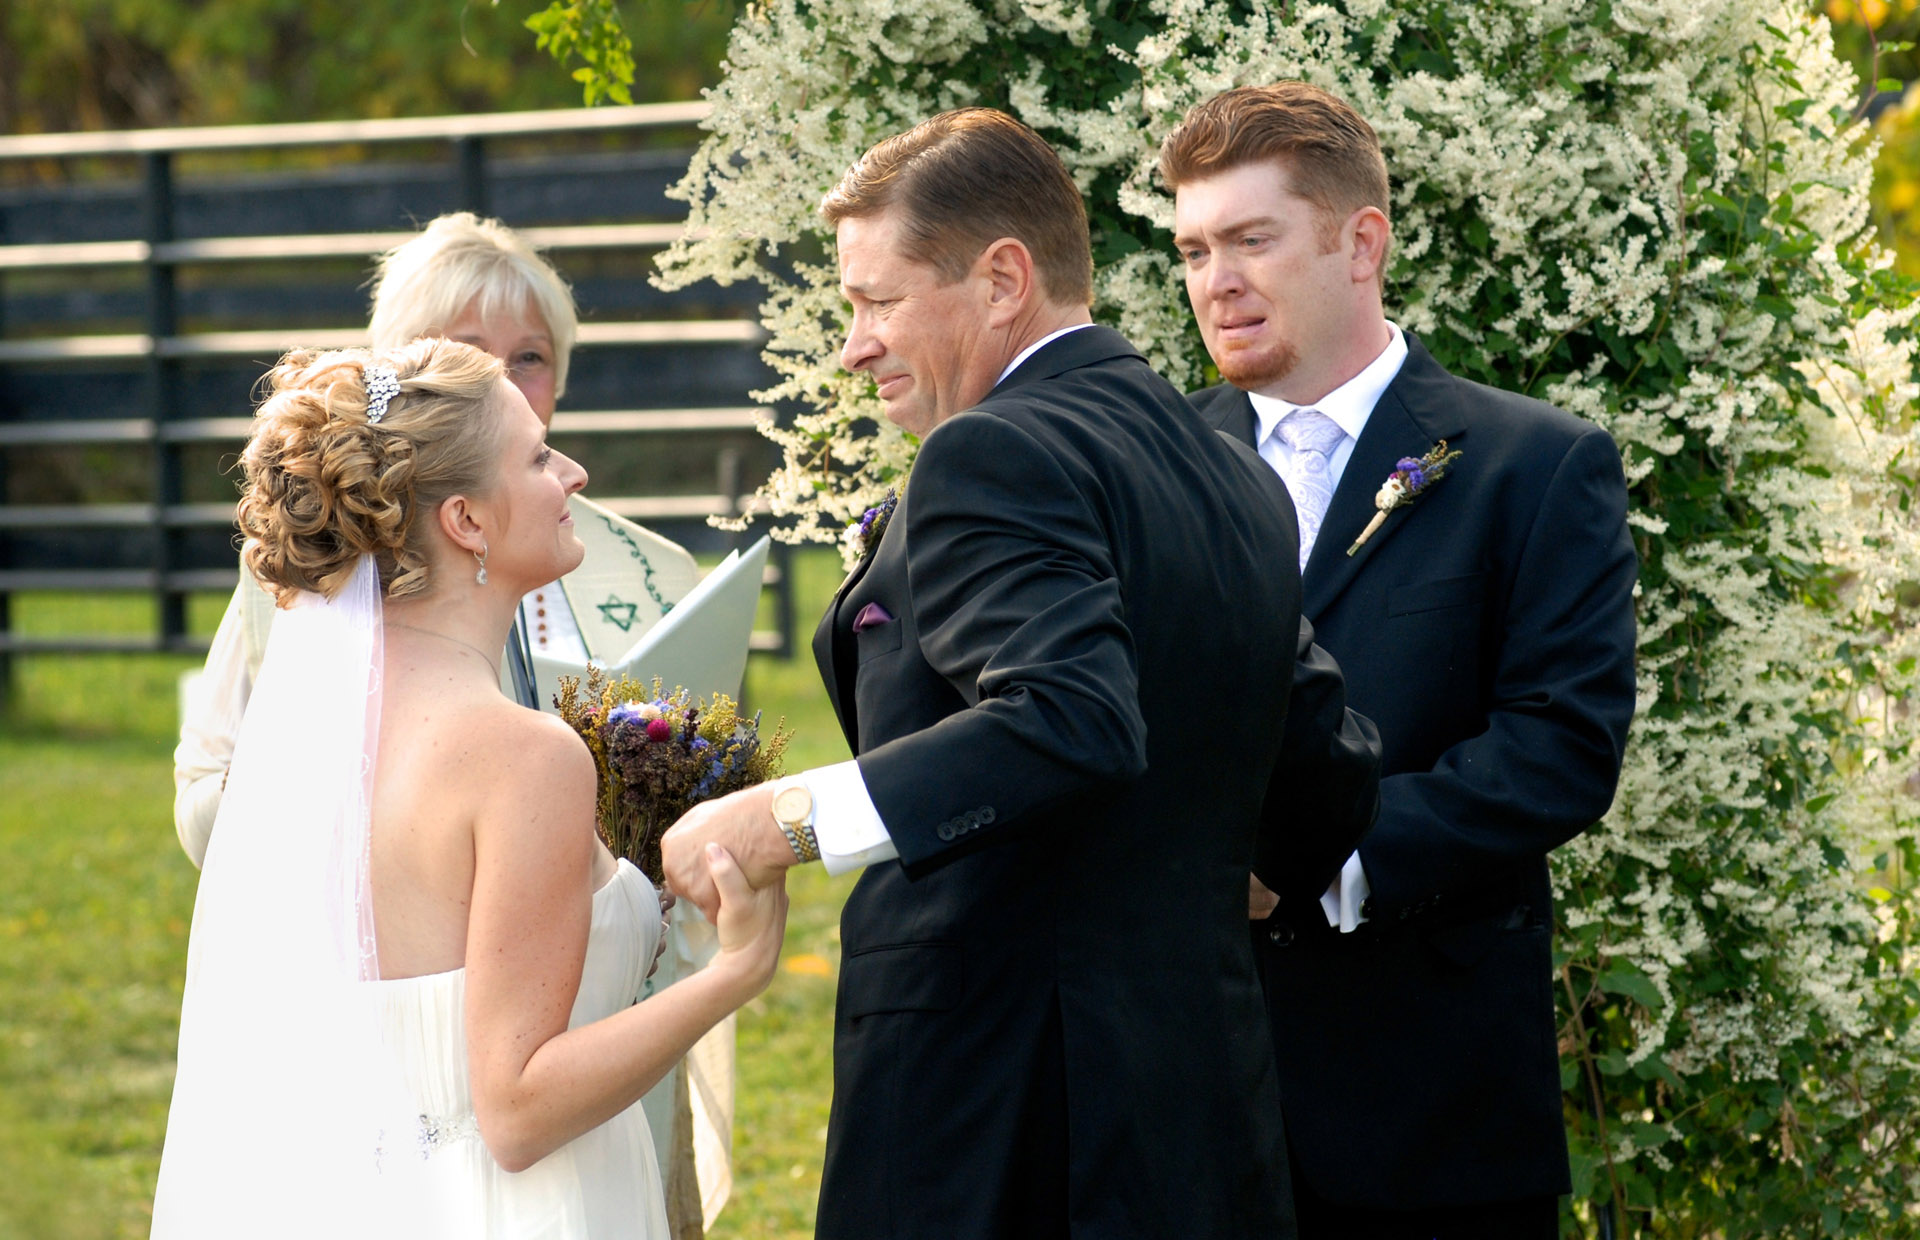 Favorite Michigan backyard wedding photography features photojournalist photos of  the emotional hand off of the bride to a visibly emotional groom during a wedding in metro Detroit, Michigan featuring their lovely backyard garden wedding in fall.